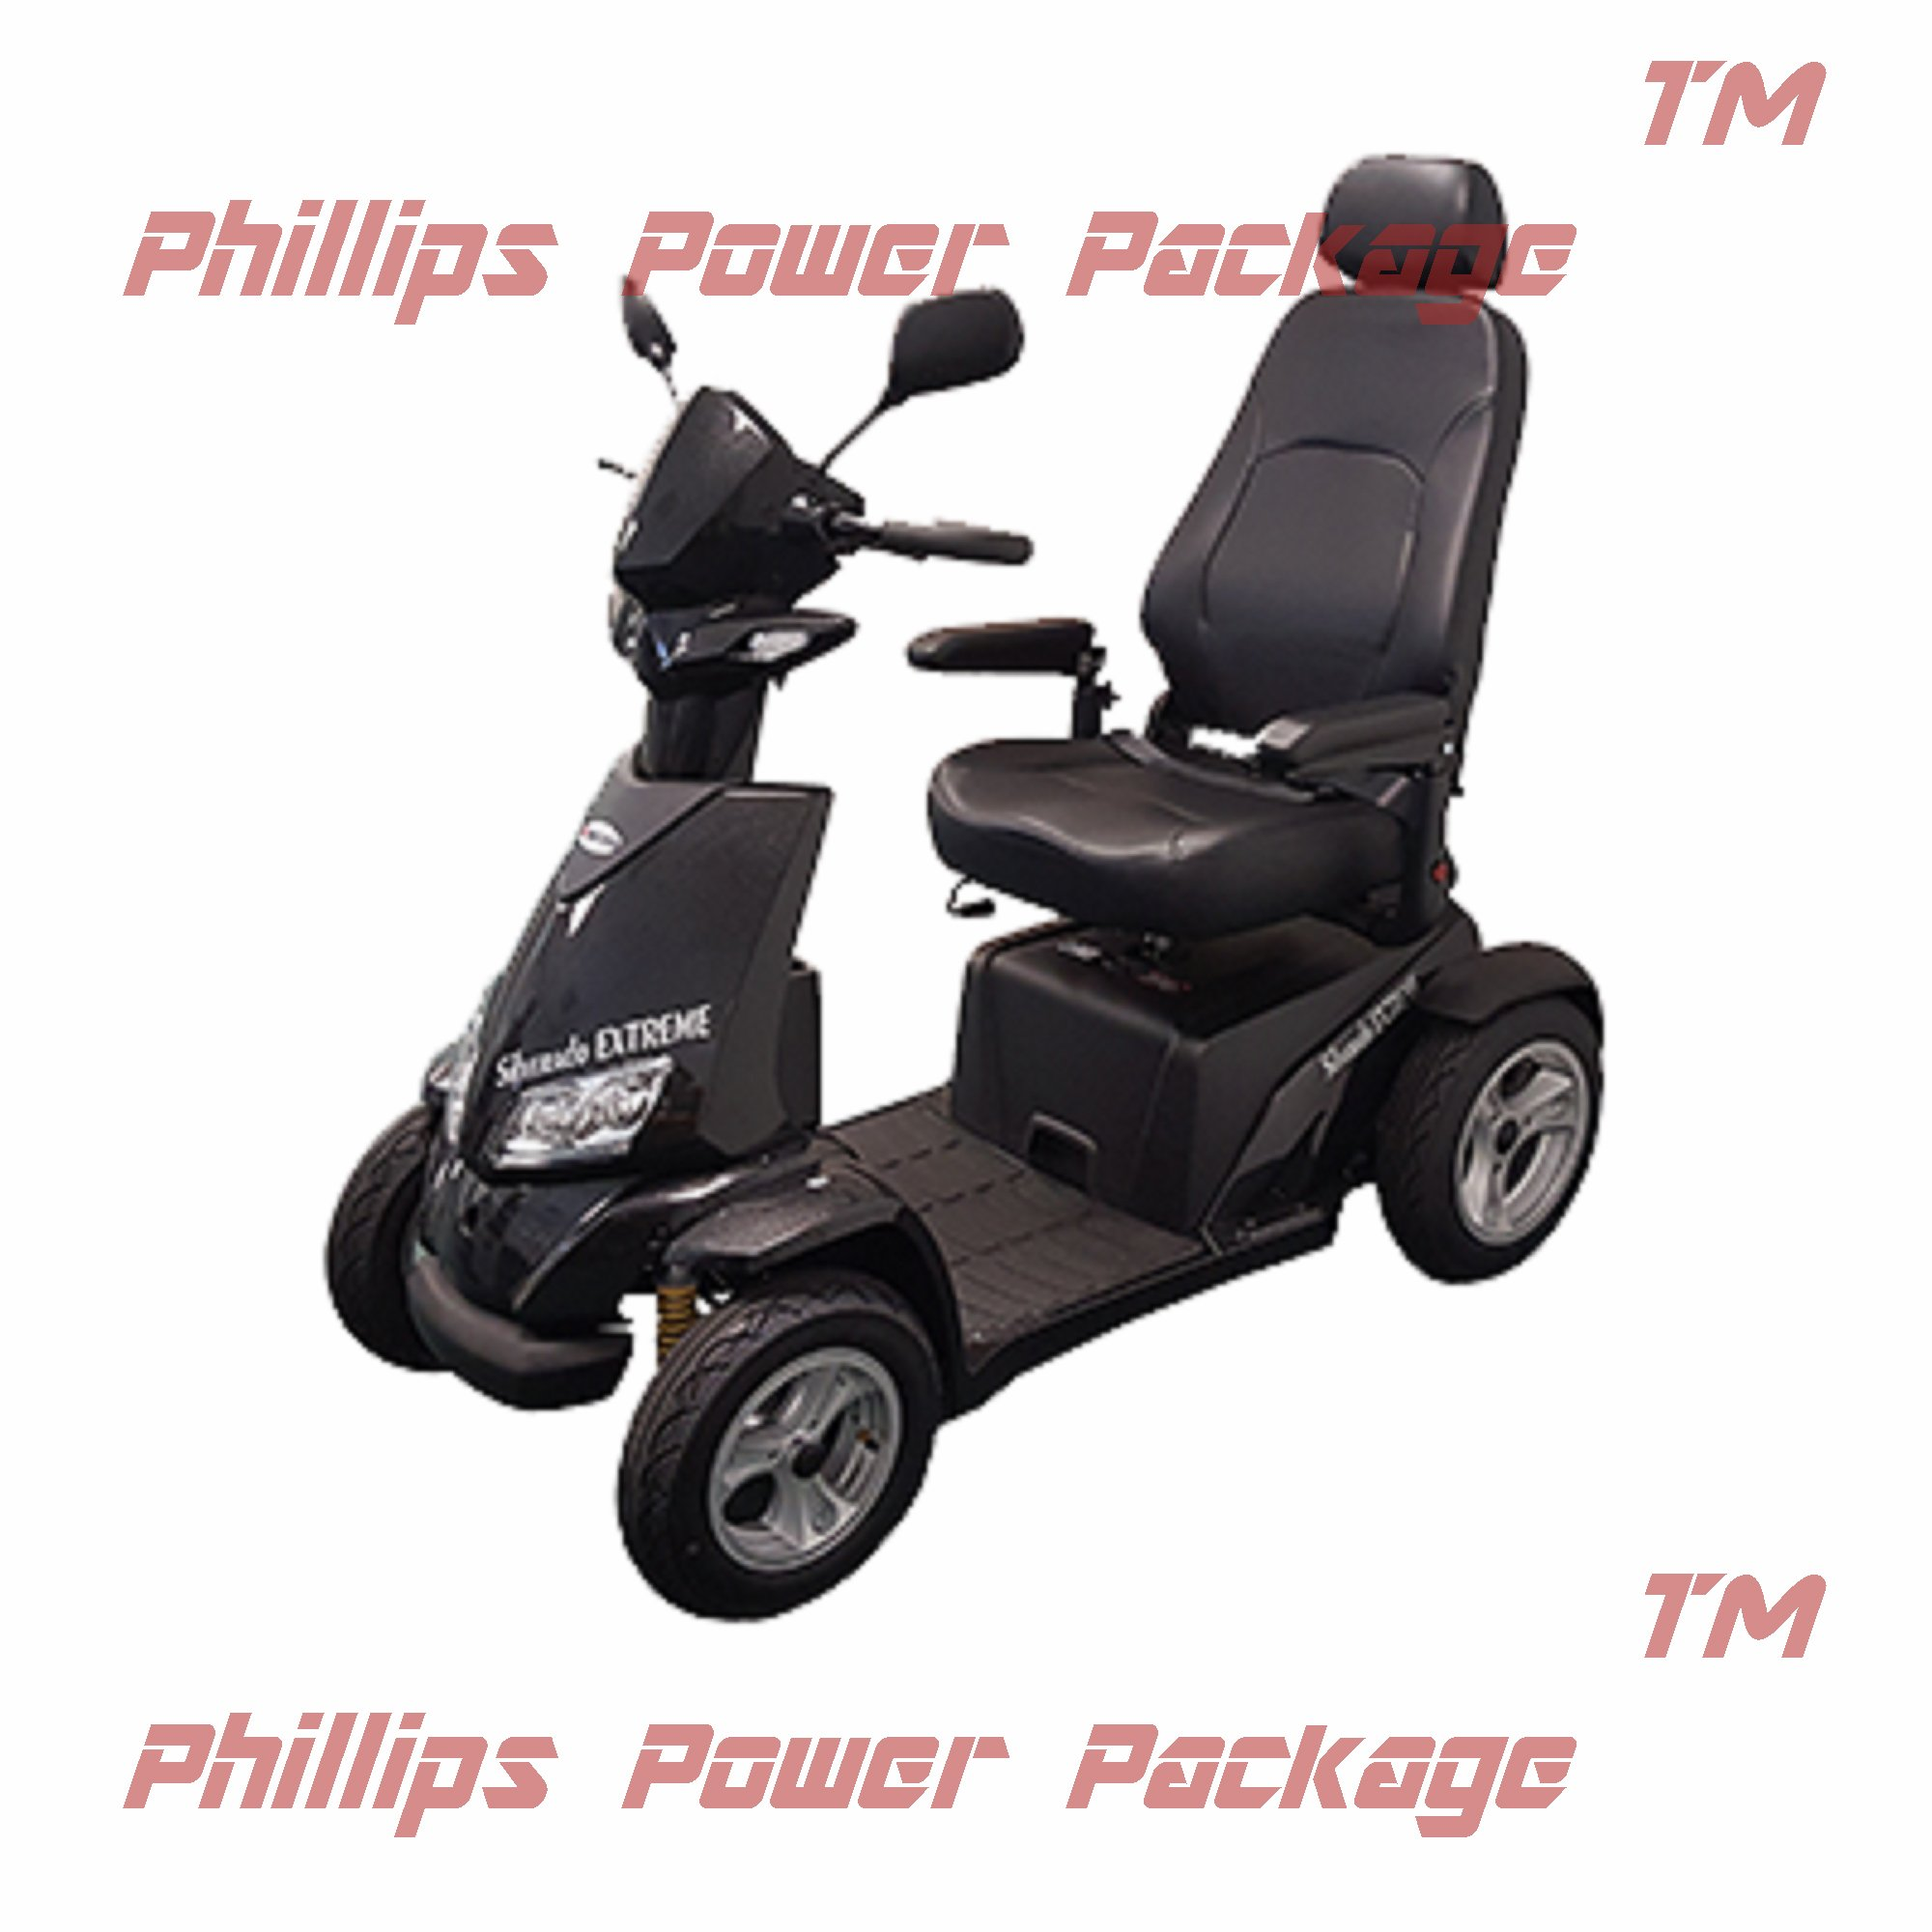 Merits - Silverado Extreme - 4-Wheel Full Suspension Electric Scooter - 20''W x 18''D - Black - PHILLIPS POWER PACKAGE TM - TO $500 VALUE